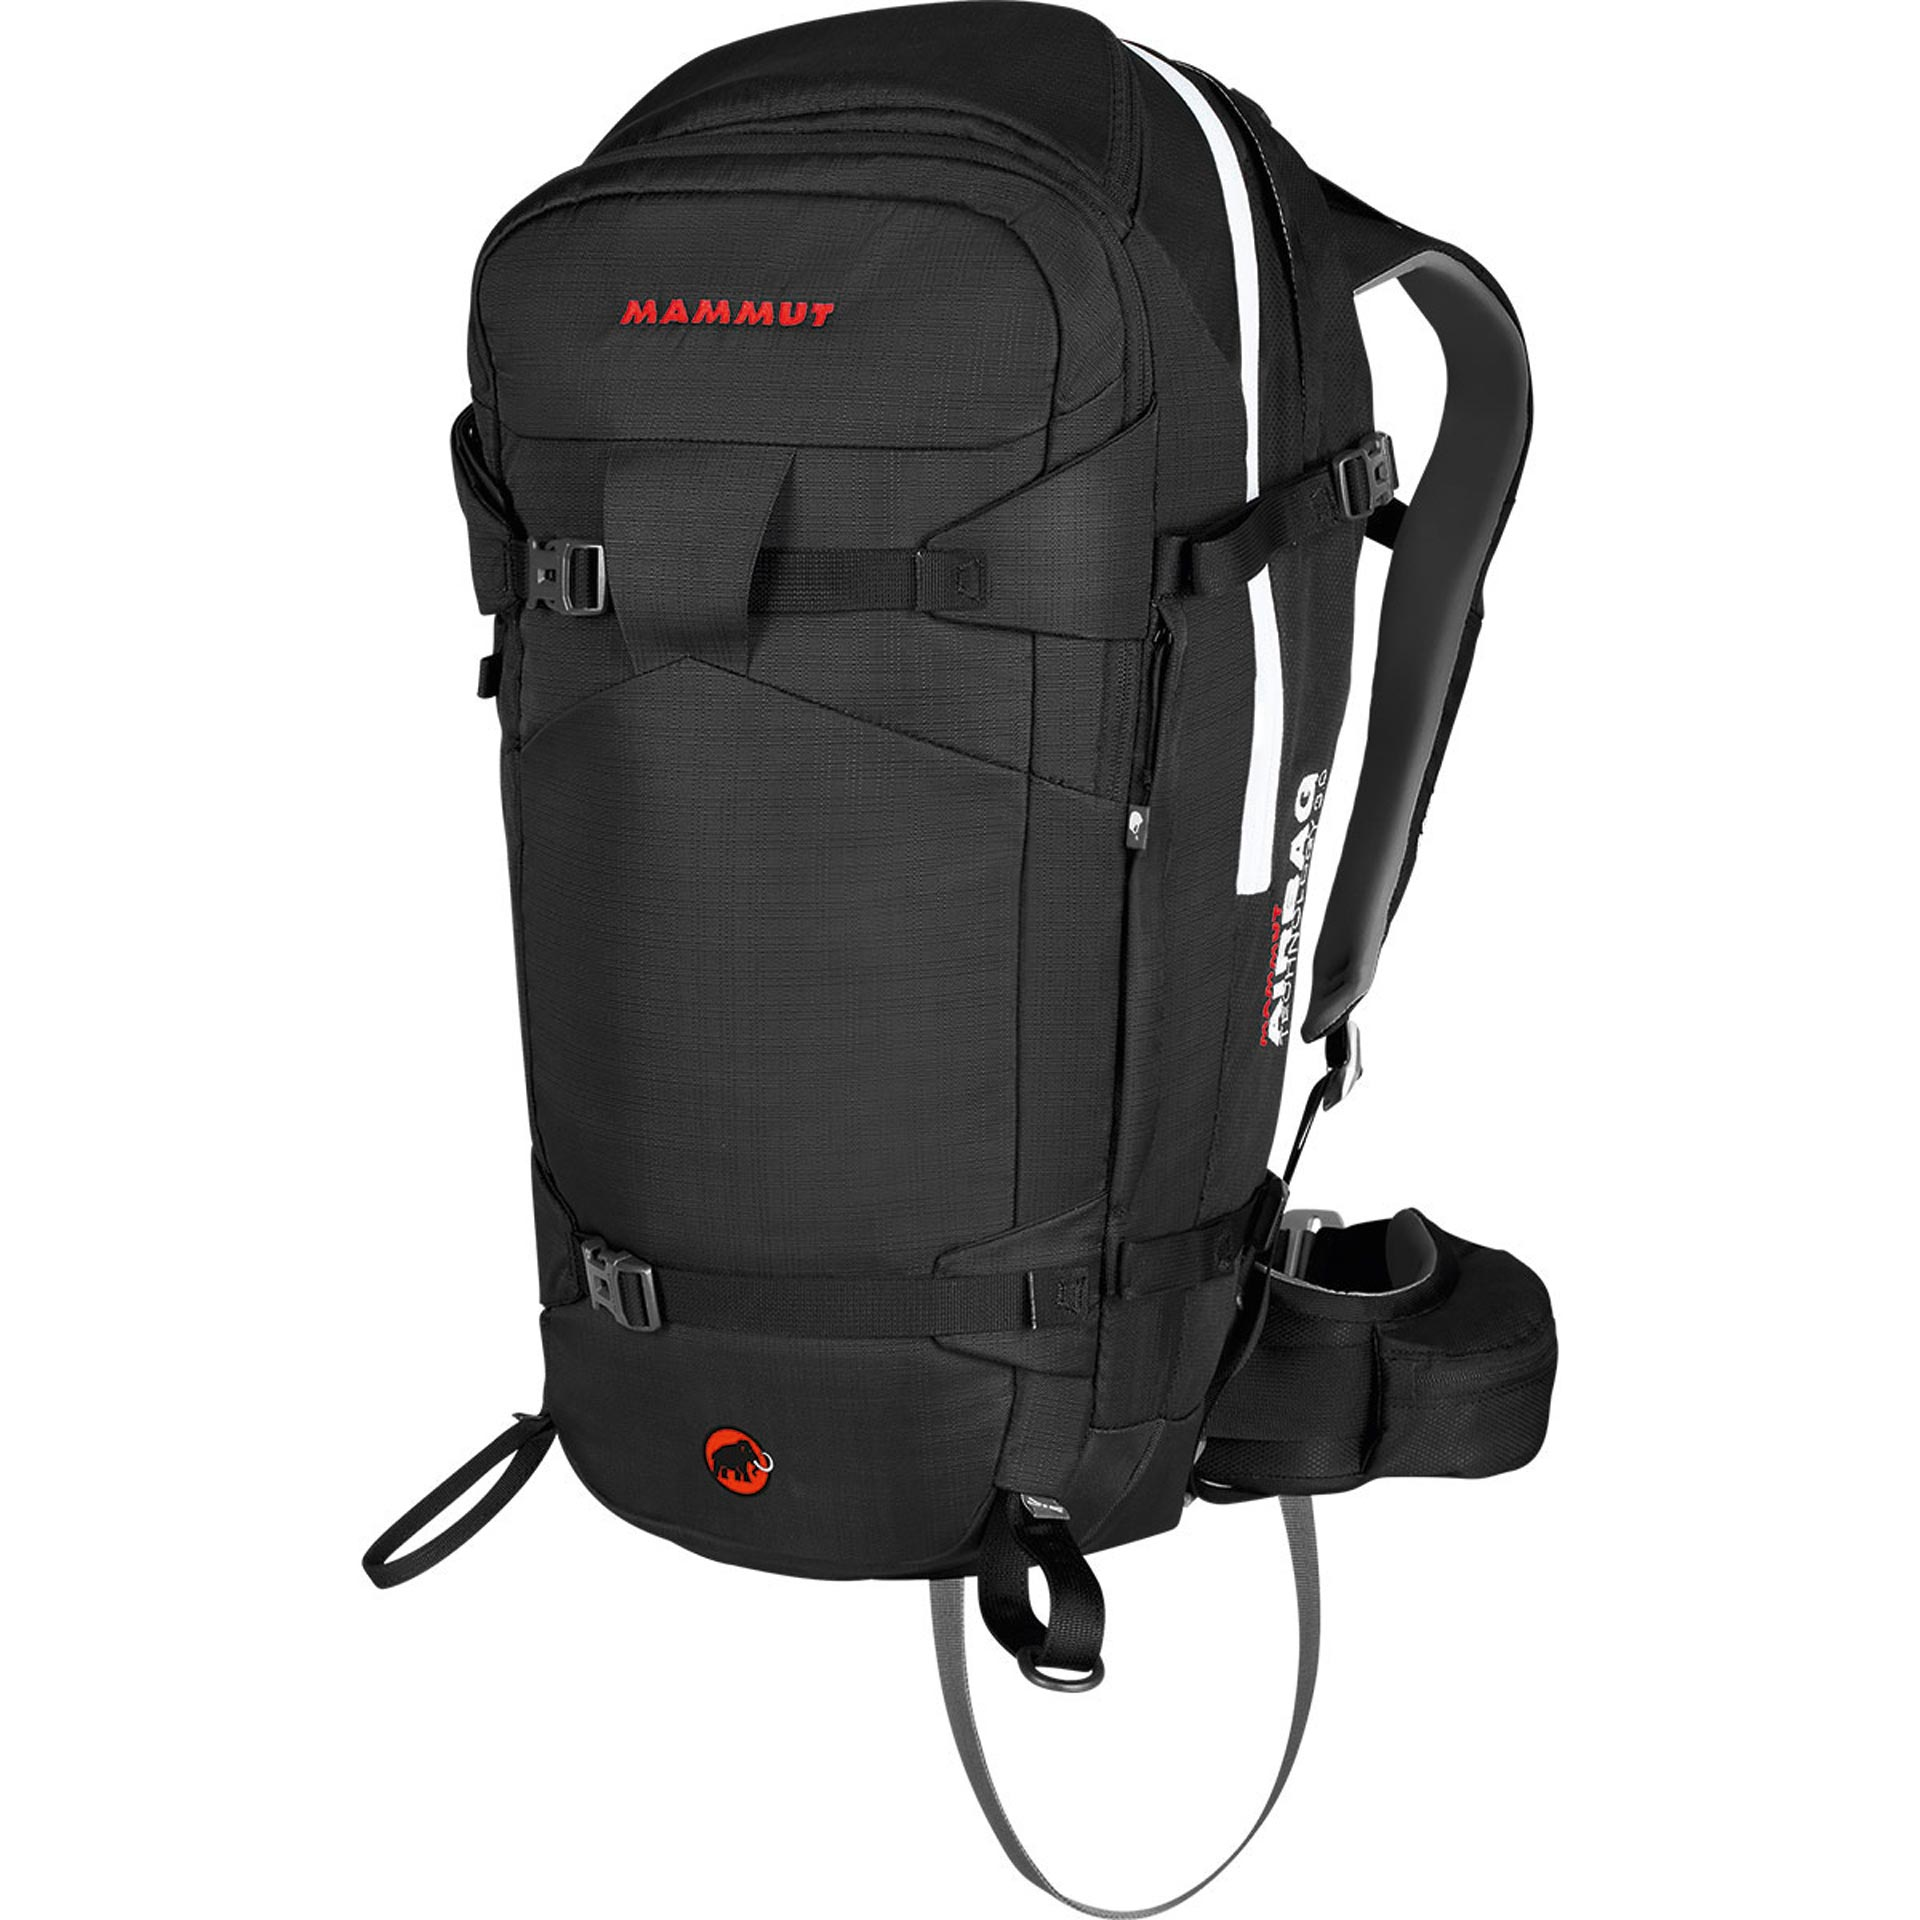 Mammut: Pro Removable Airbag 3.0